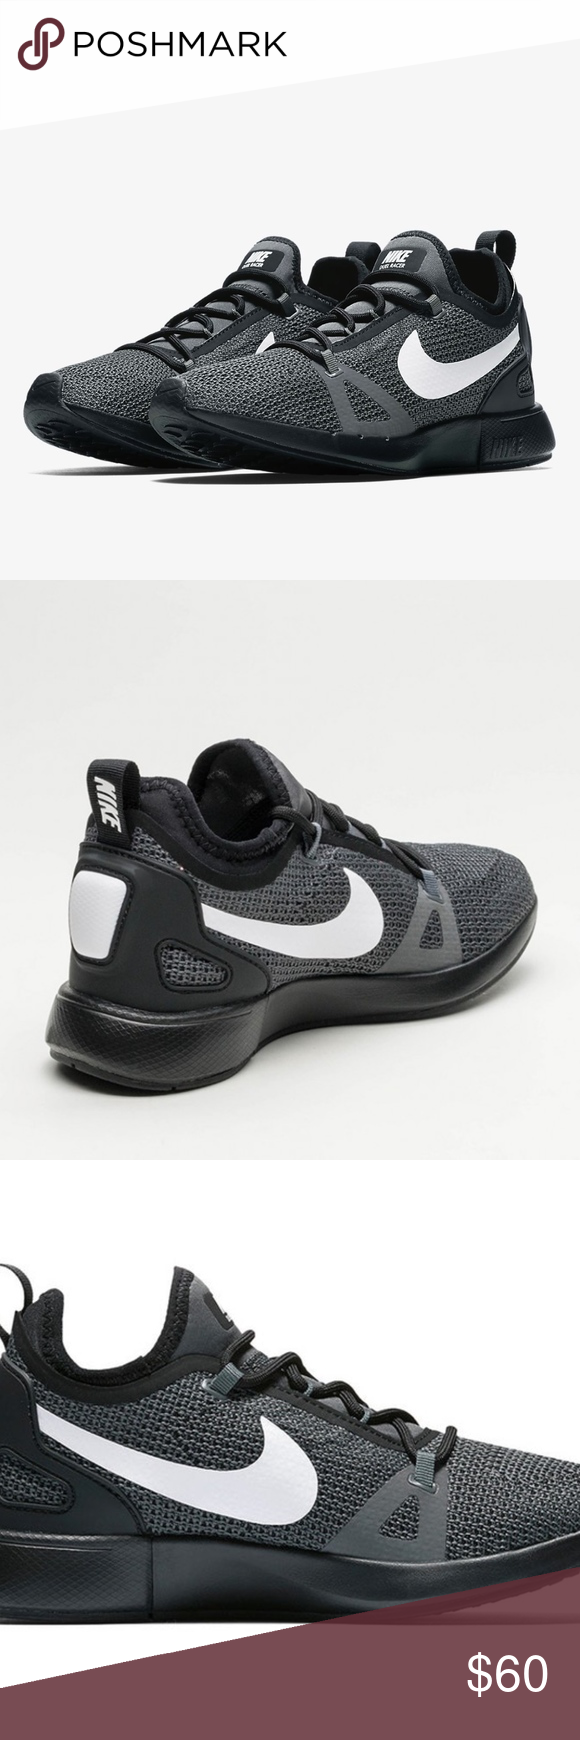 NIKE DUEL RACER CASUAL SHOES NWT Old school running style meets modern  technology on the Women's Nike Duel Racer Casual Shoes. 3-Tone engineered  upper for a ...